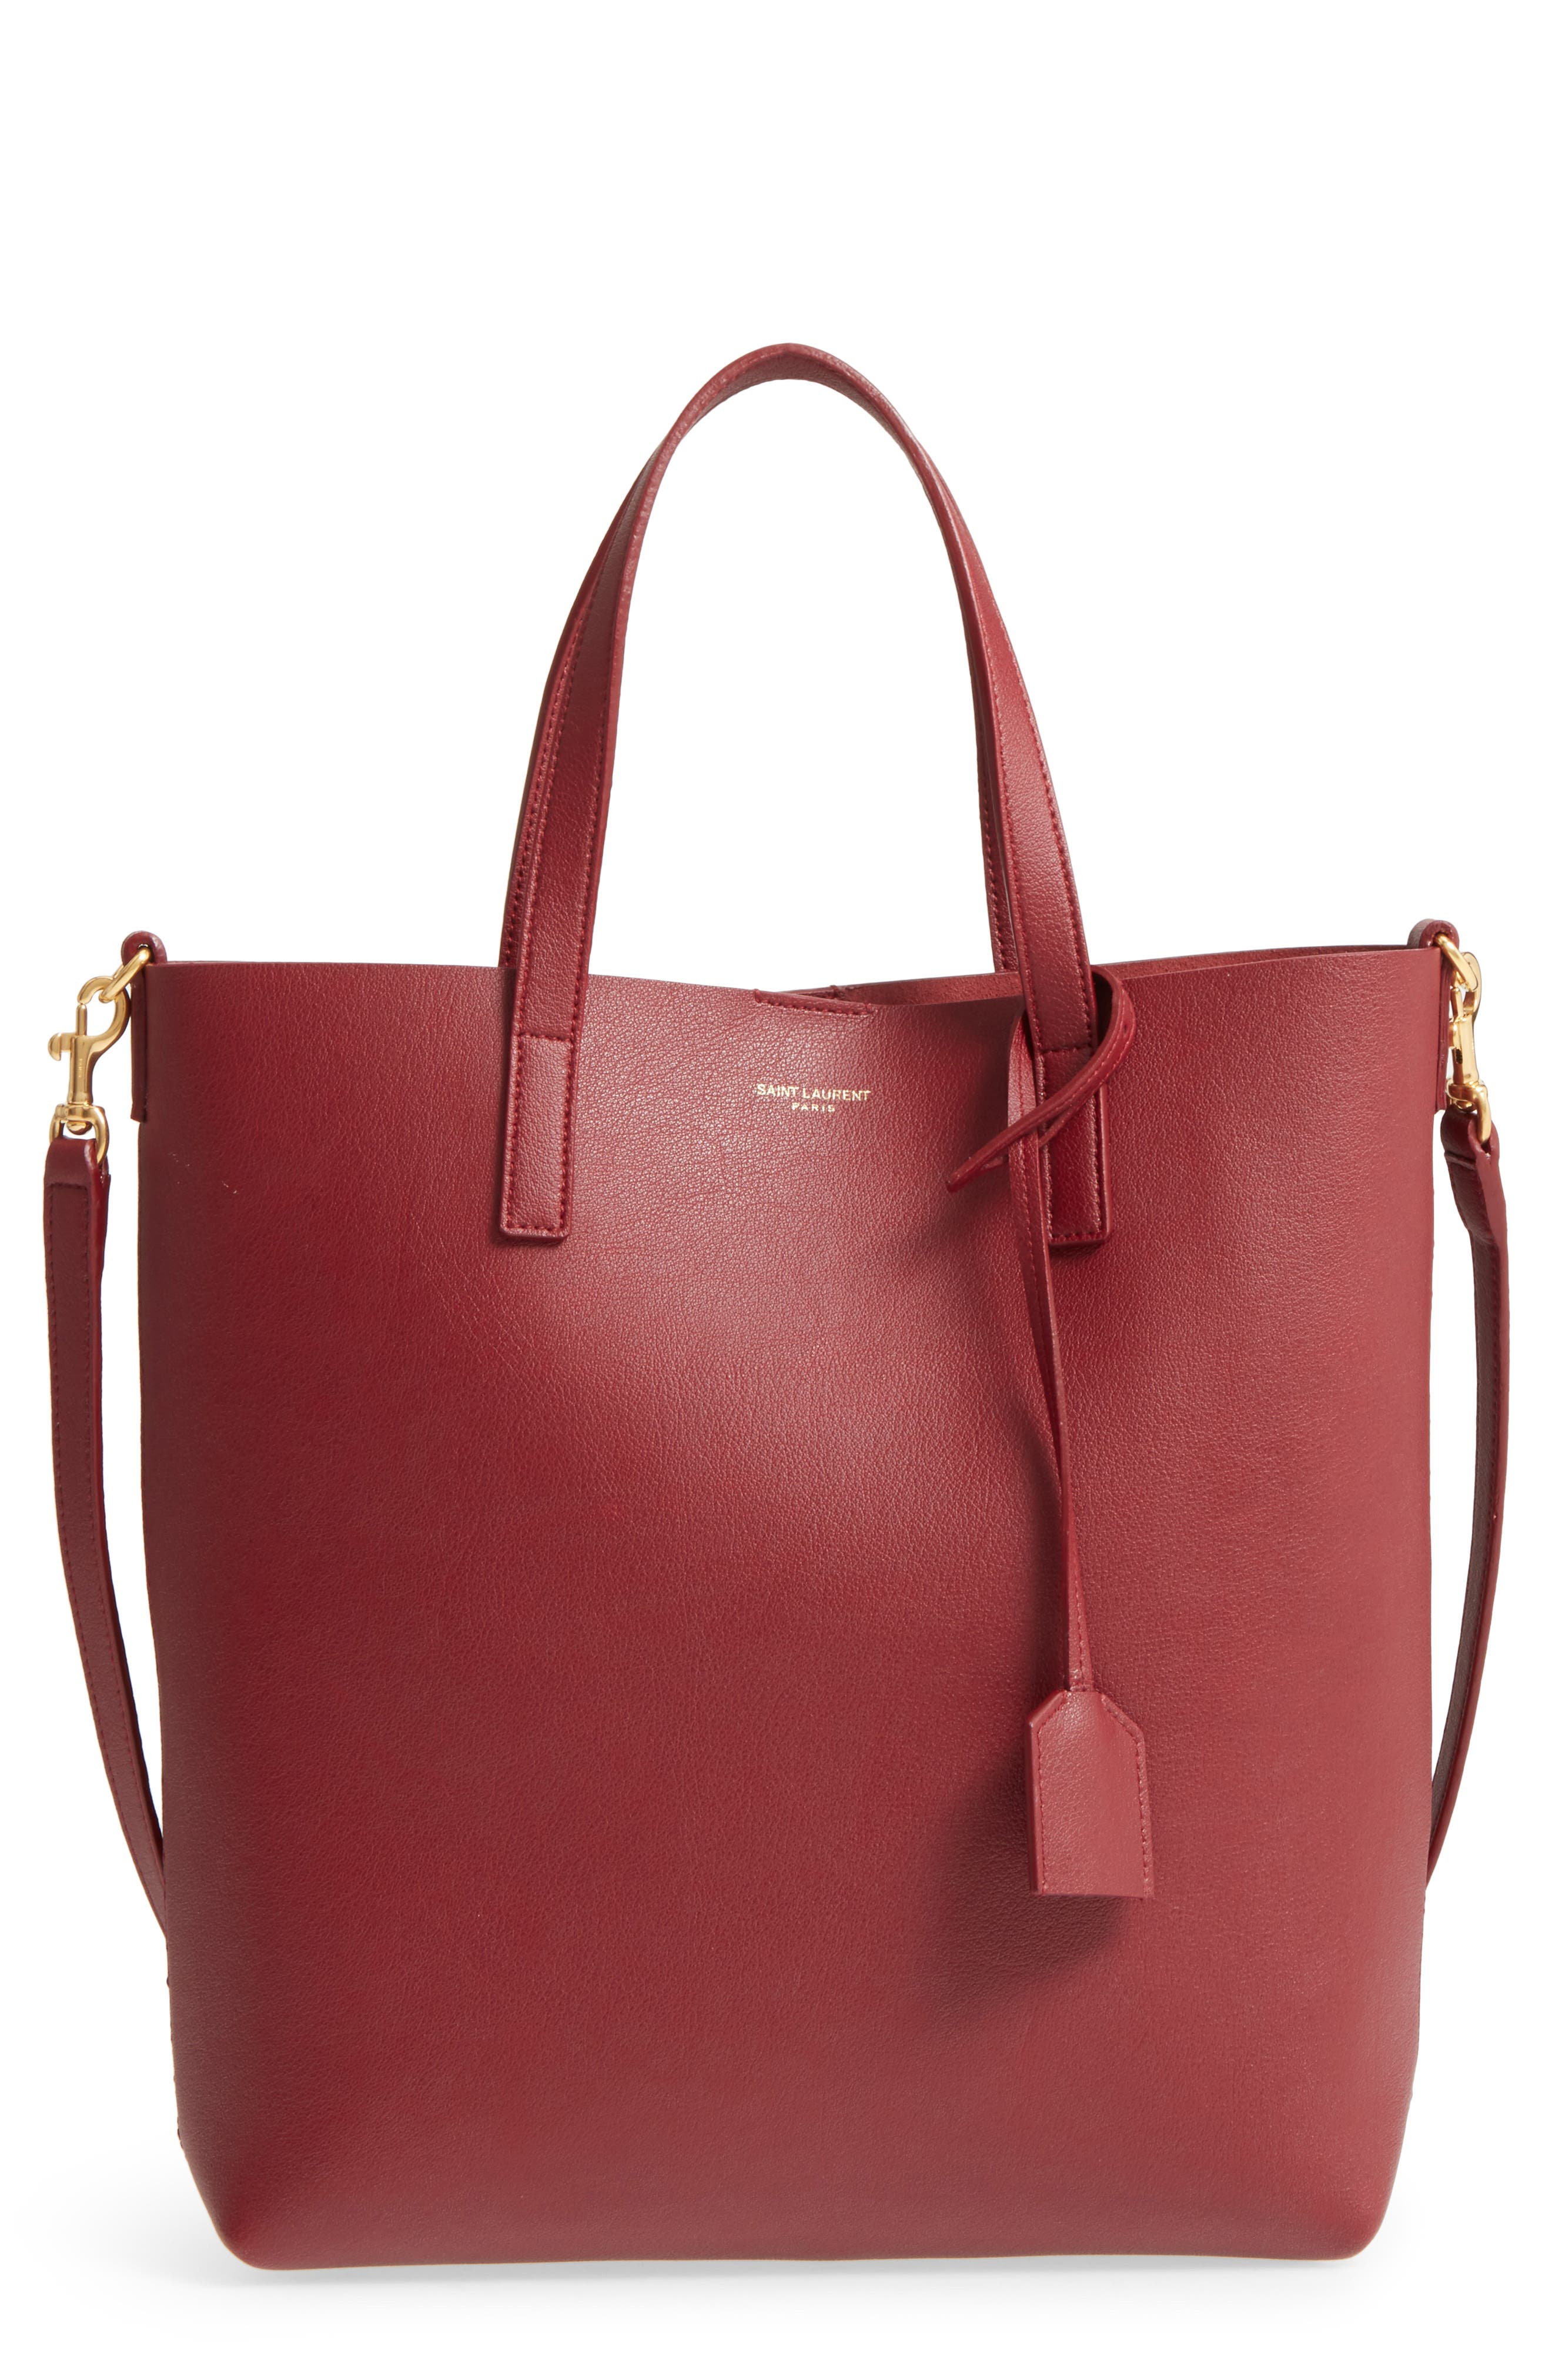 Main Image - Saint Laurent Toy Shopping Leather Tote